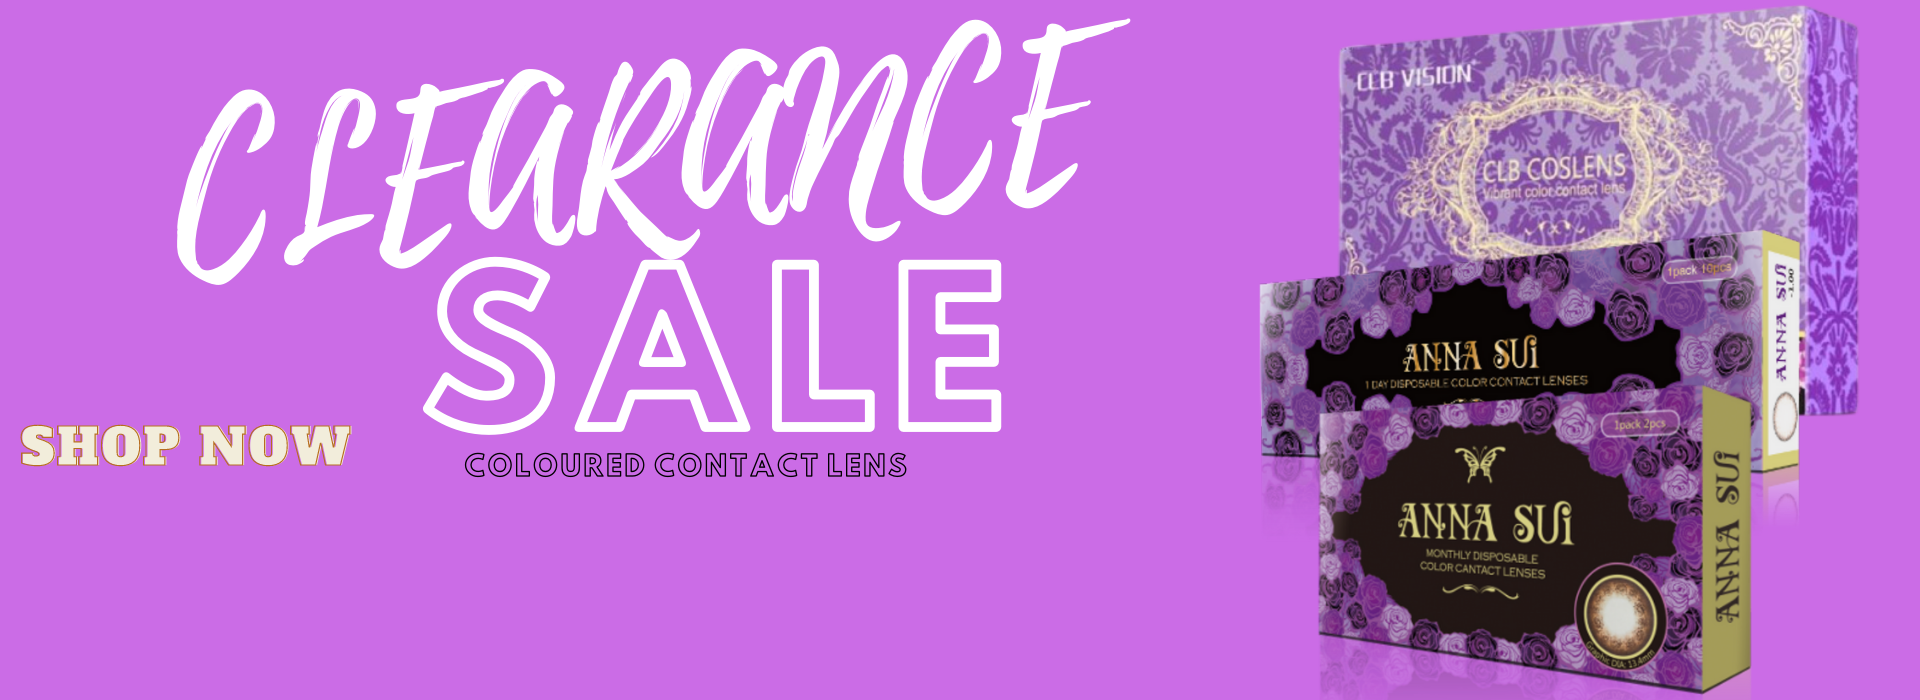 CLEARANCE SALE CONTACT LENS